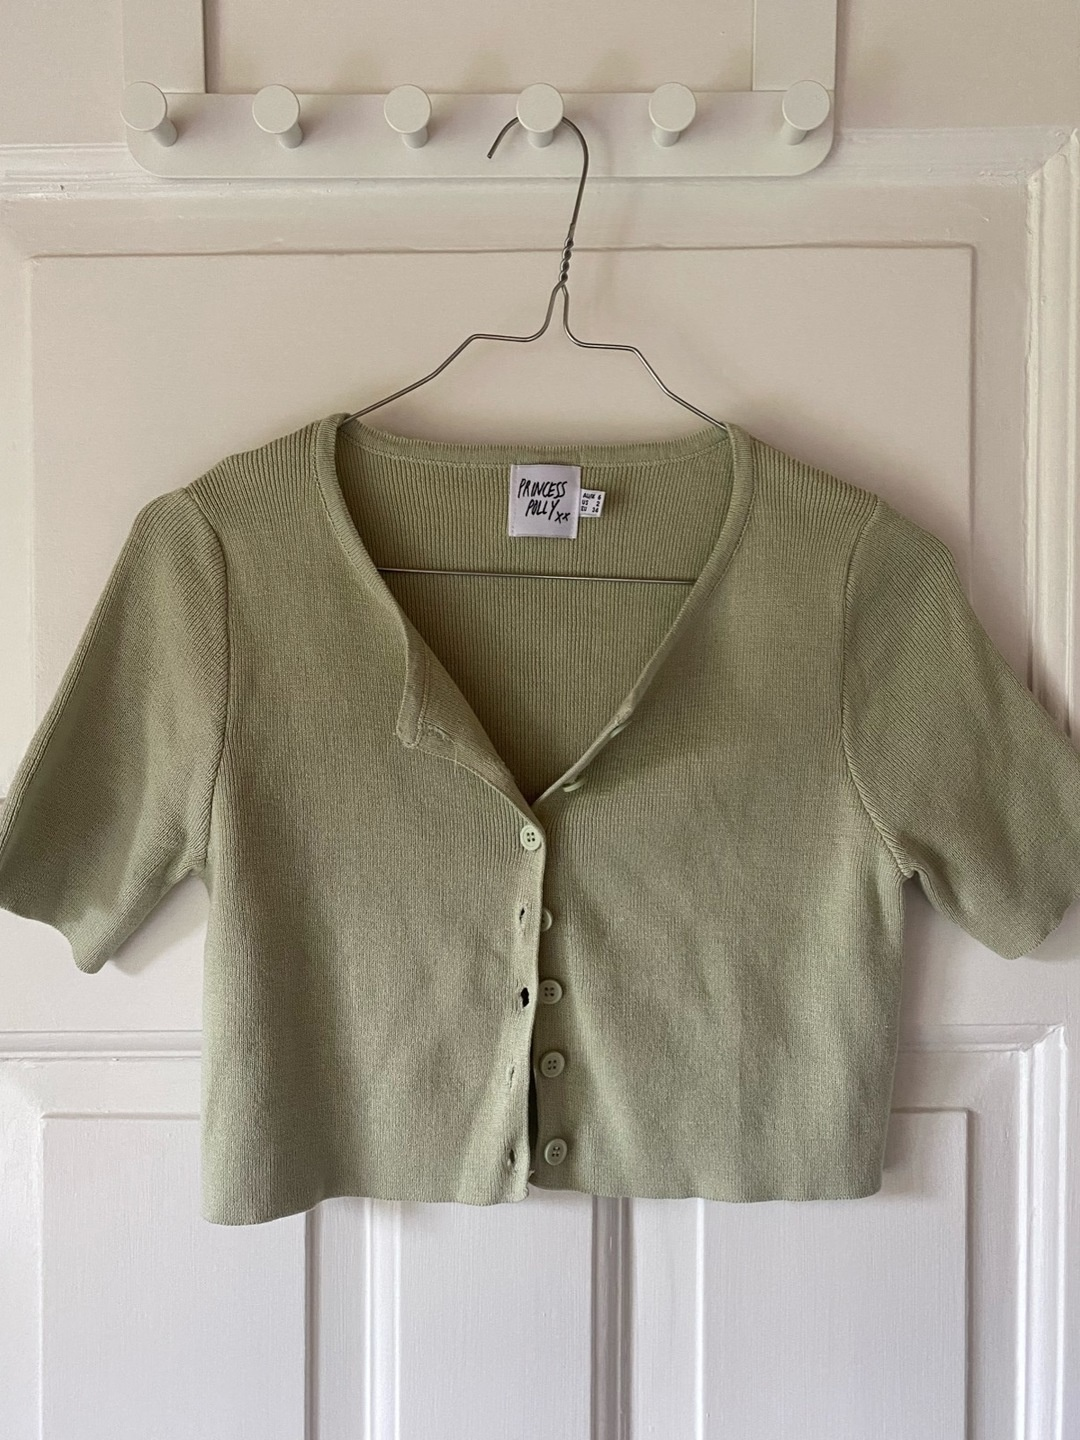 Women's jumpers & cardigans - PRINCESS POLLY photo 3